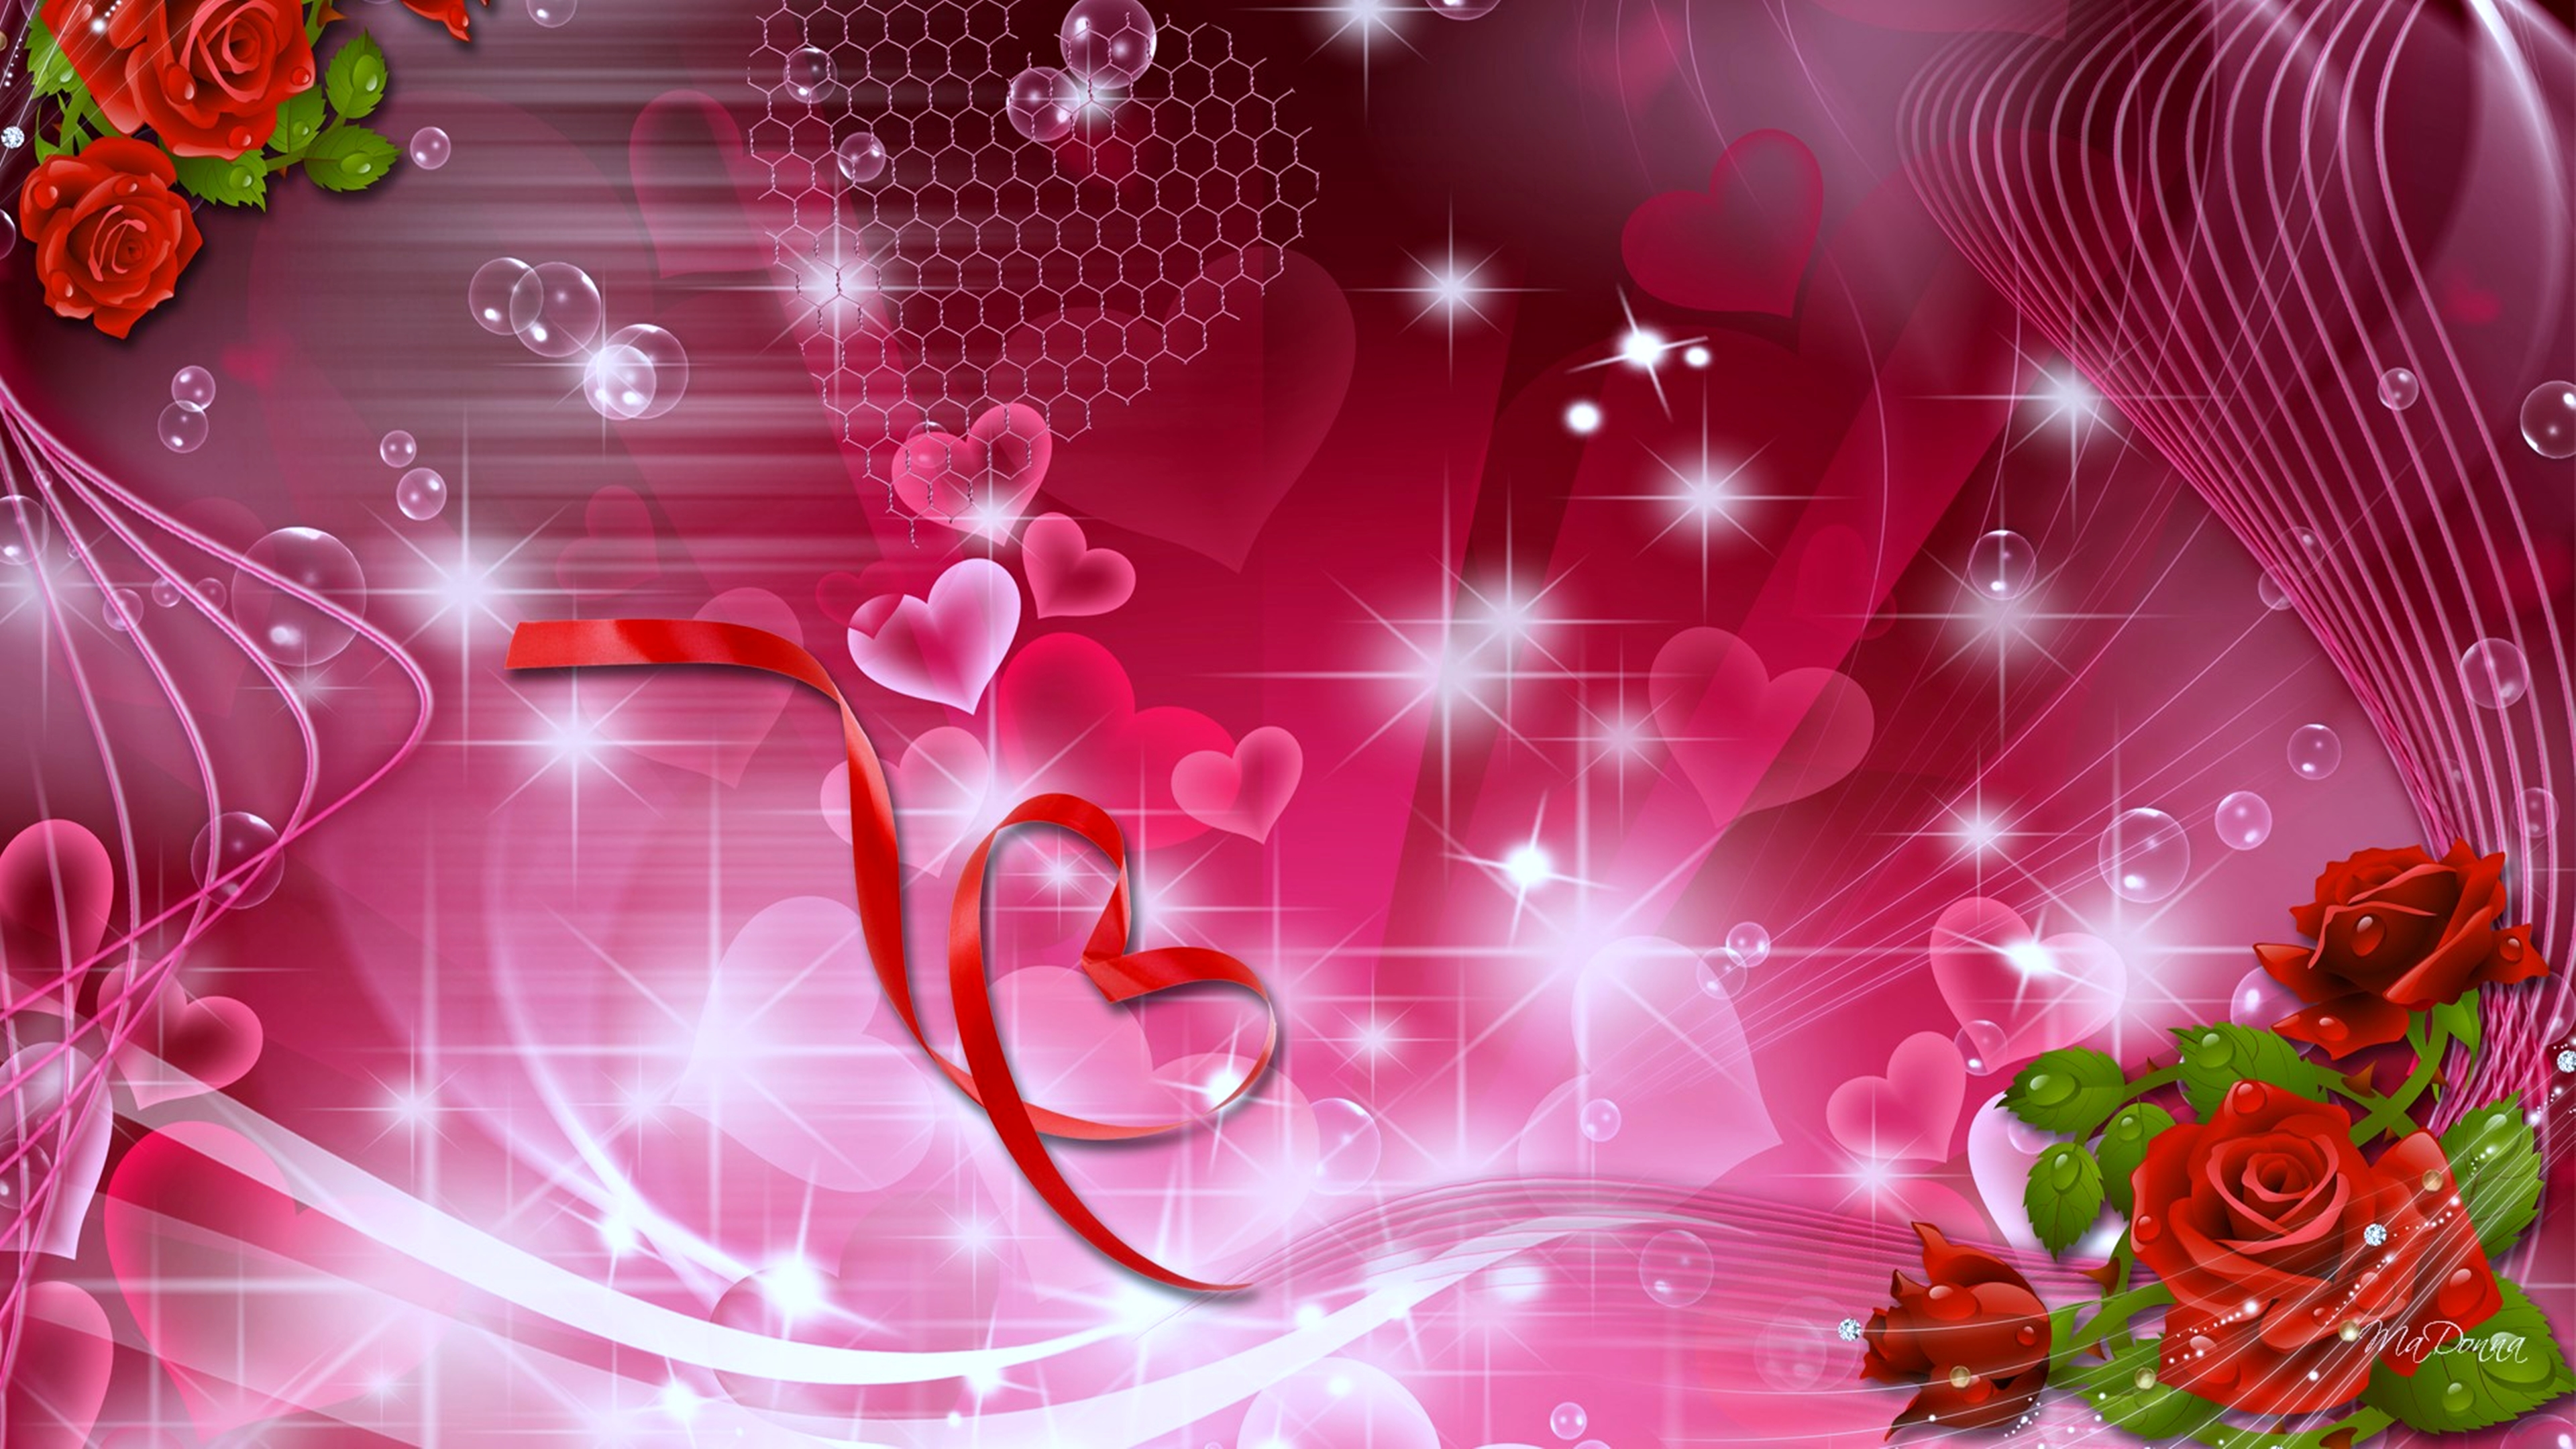 Love Wallpapers In Ultra Hd : Love Backgrounds, Pictures, Images